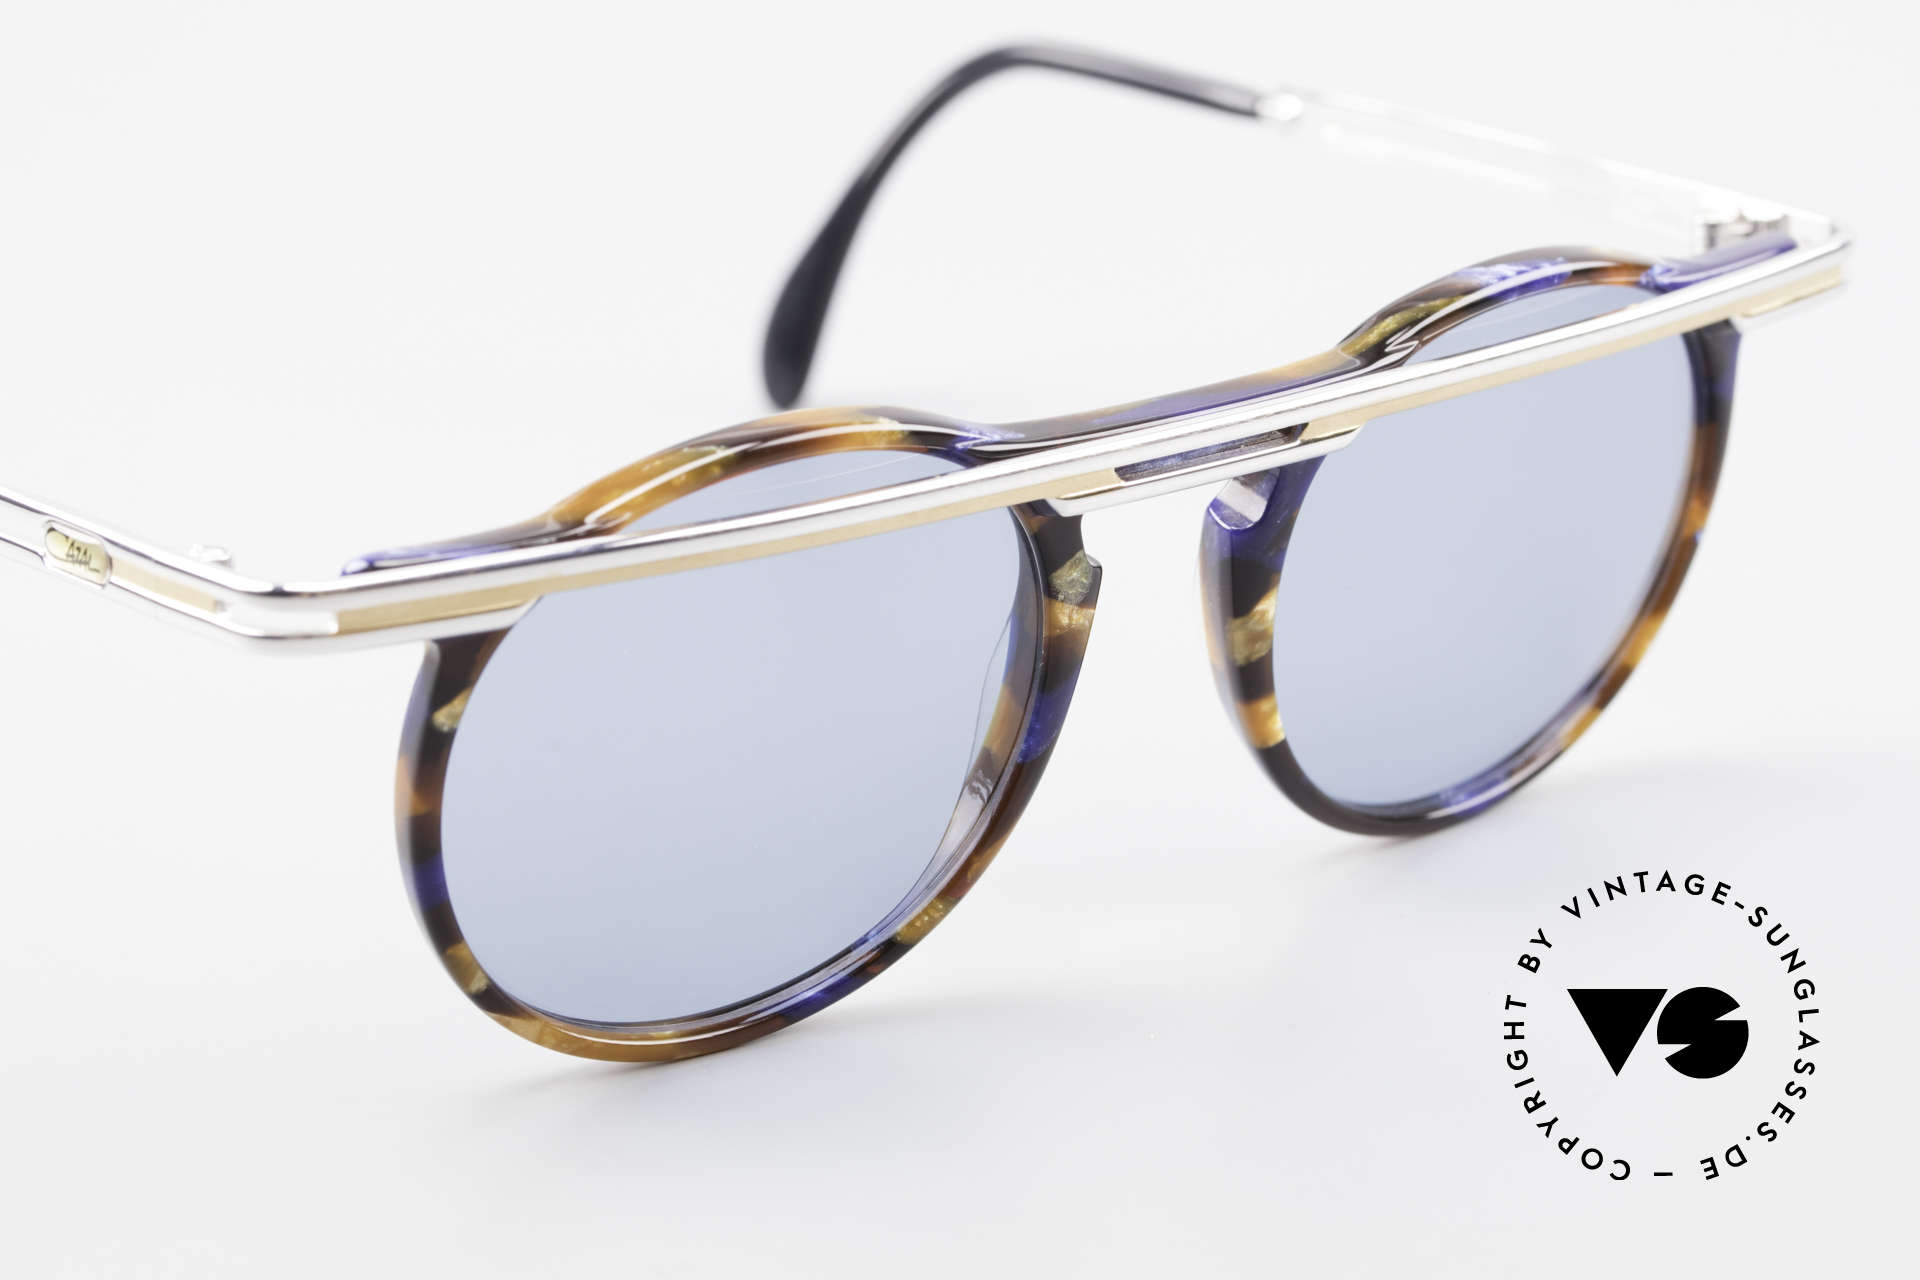 Cazal 648 Old Cari Zalloni Sunglasses, unworn, NOS (like all our rare vintage Cazal glasses), Made for Men and Women